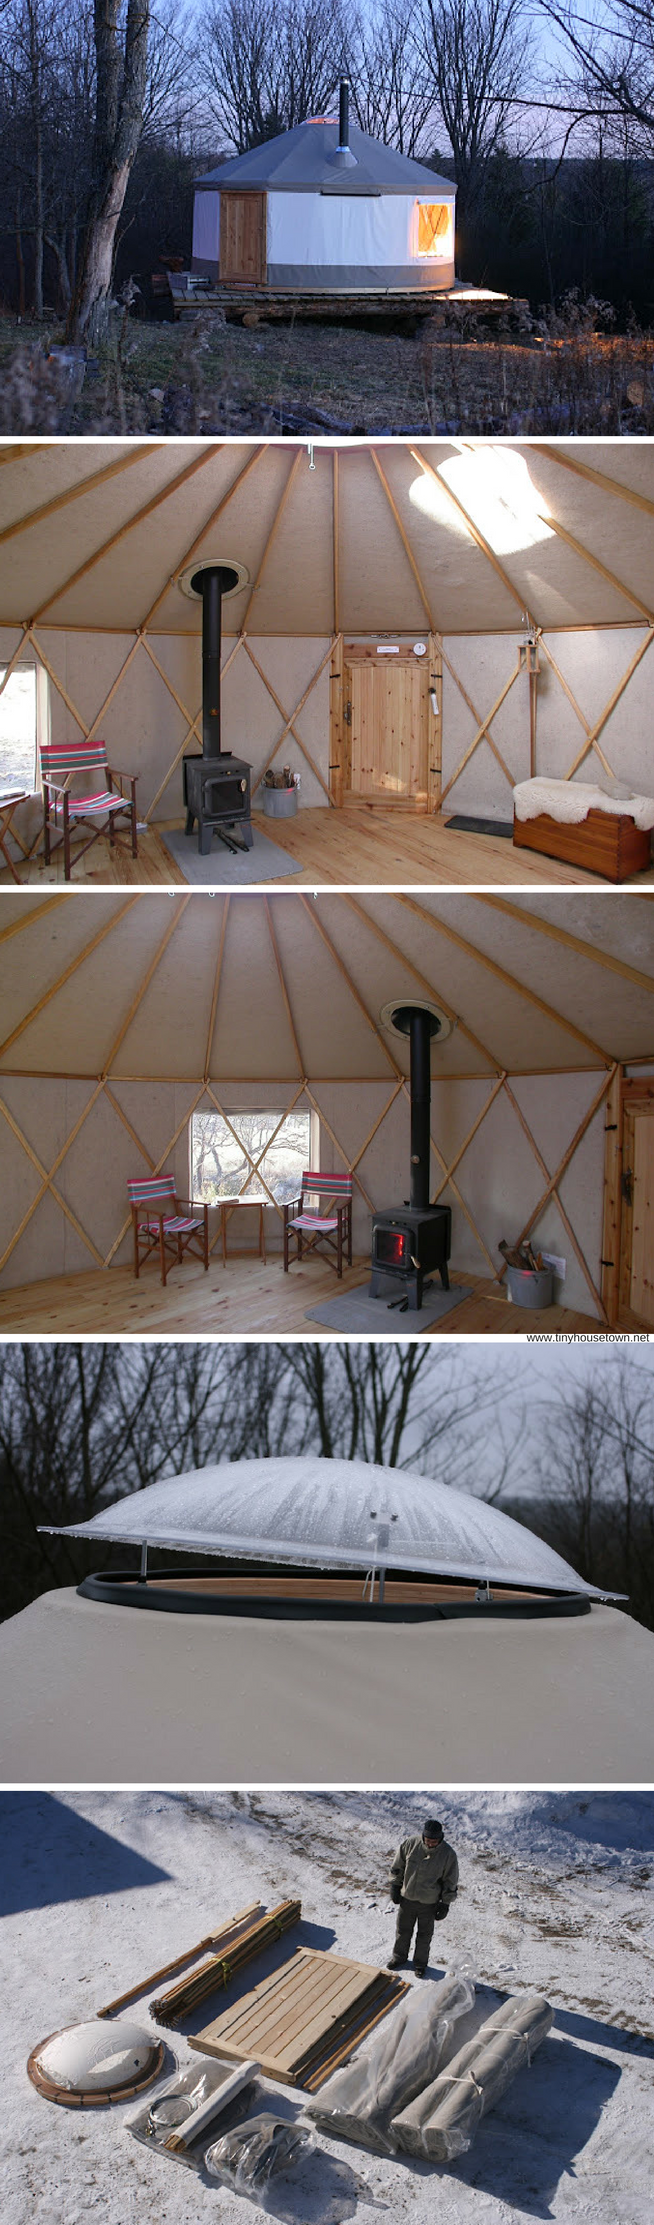 A 133 sq ft yurt you can make yourself in about three hours a 133 sq ft yurt you can make yourself in about three hours solutioingenieria Images